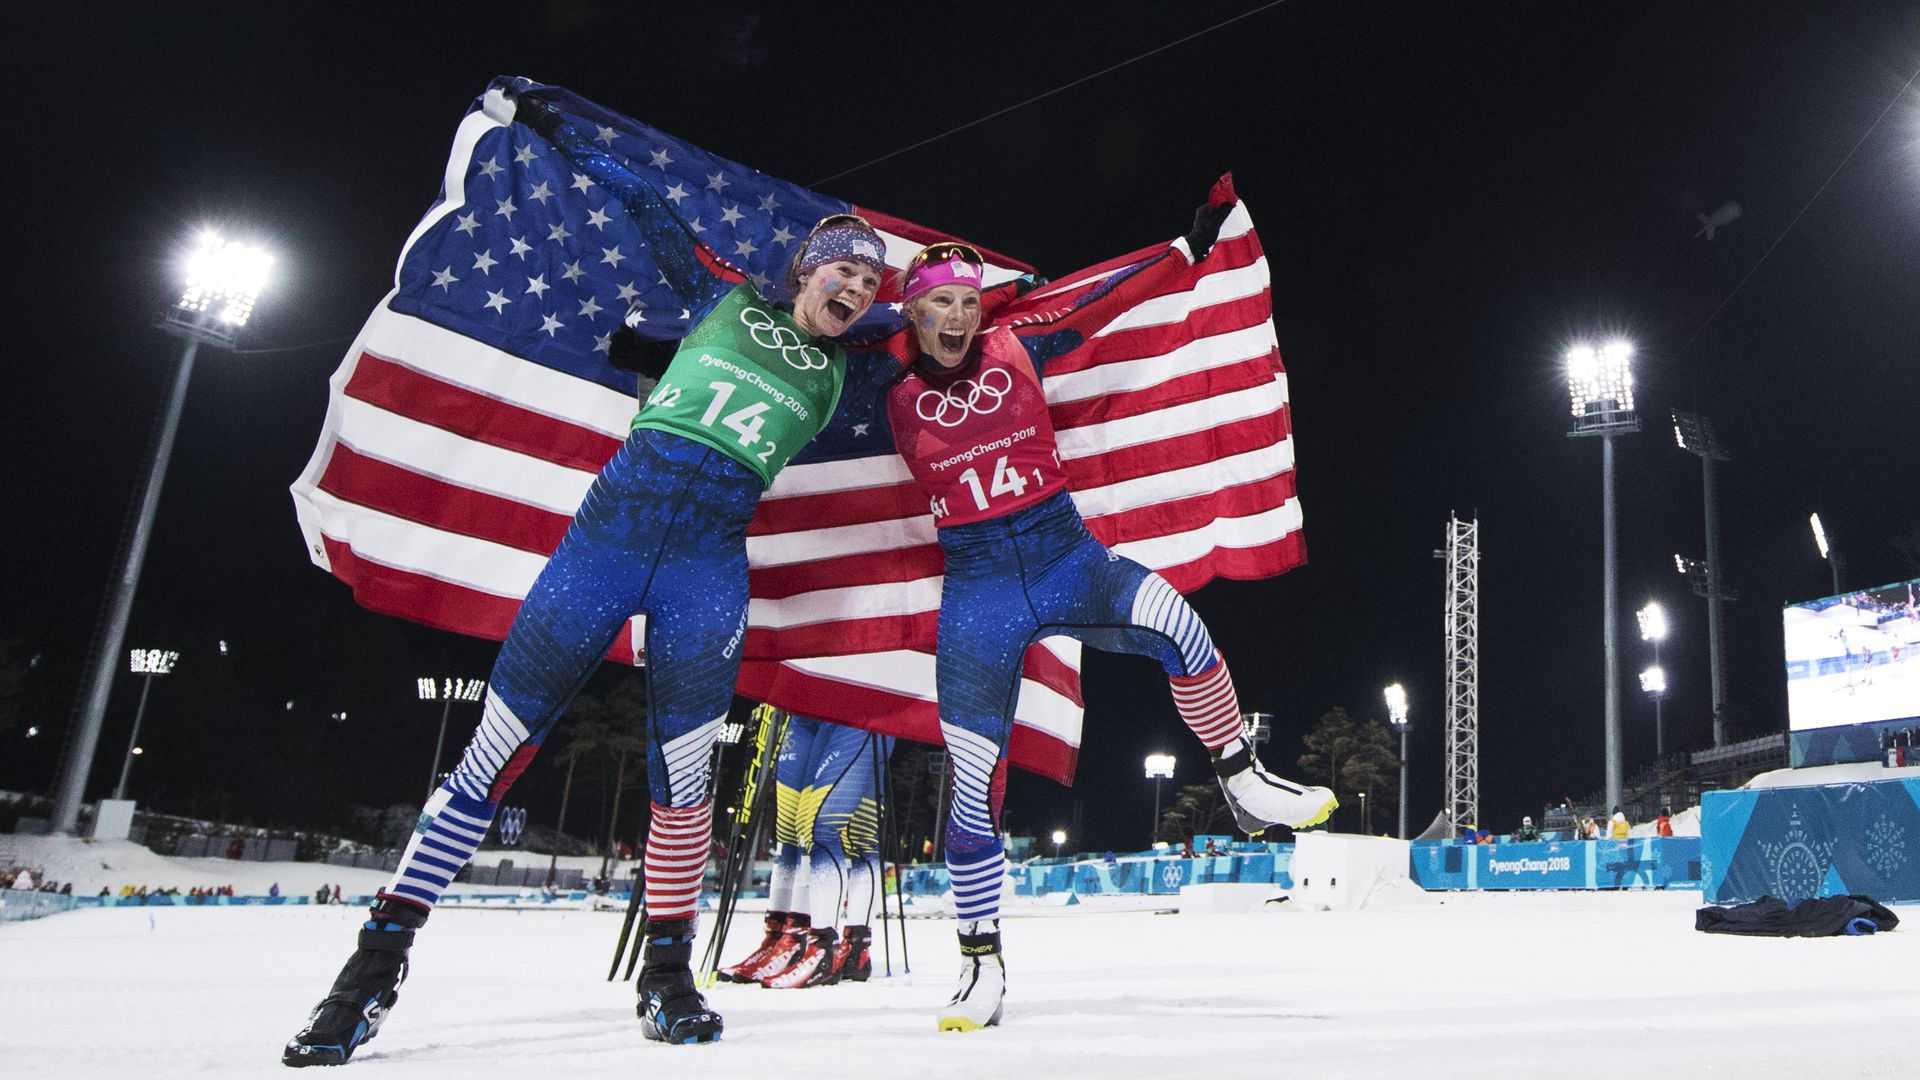 Kikkan Randall and Jessica Diggins at the Olympics.